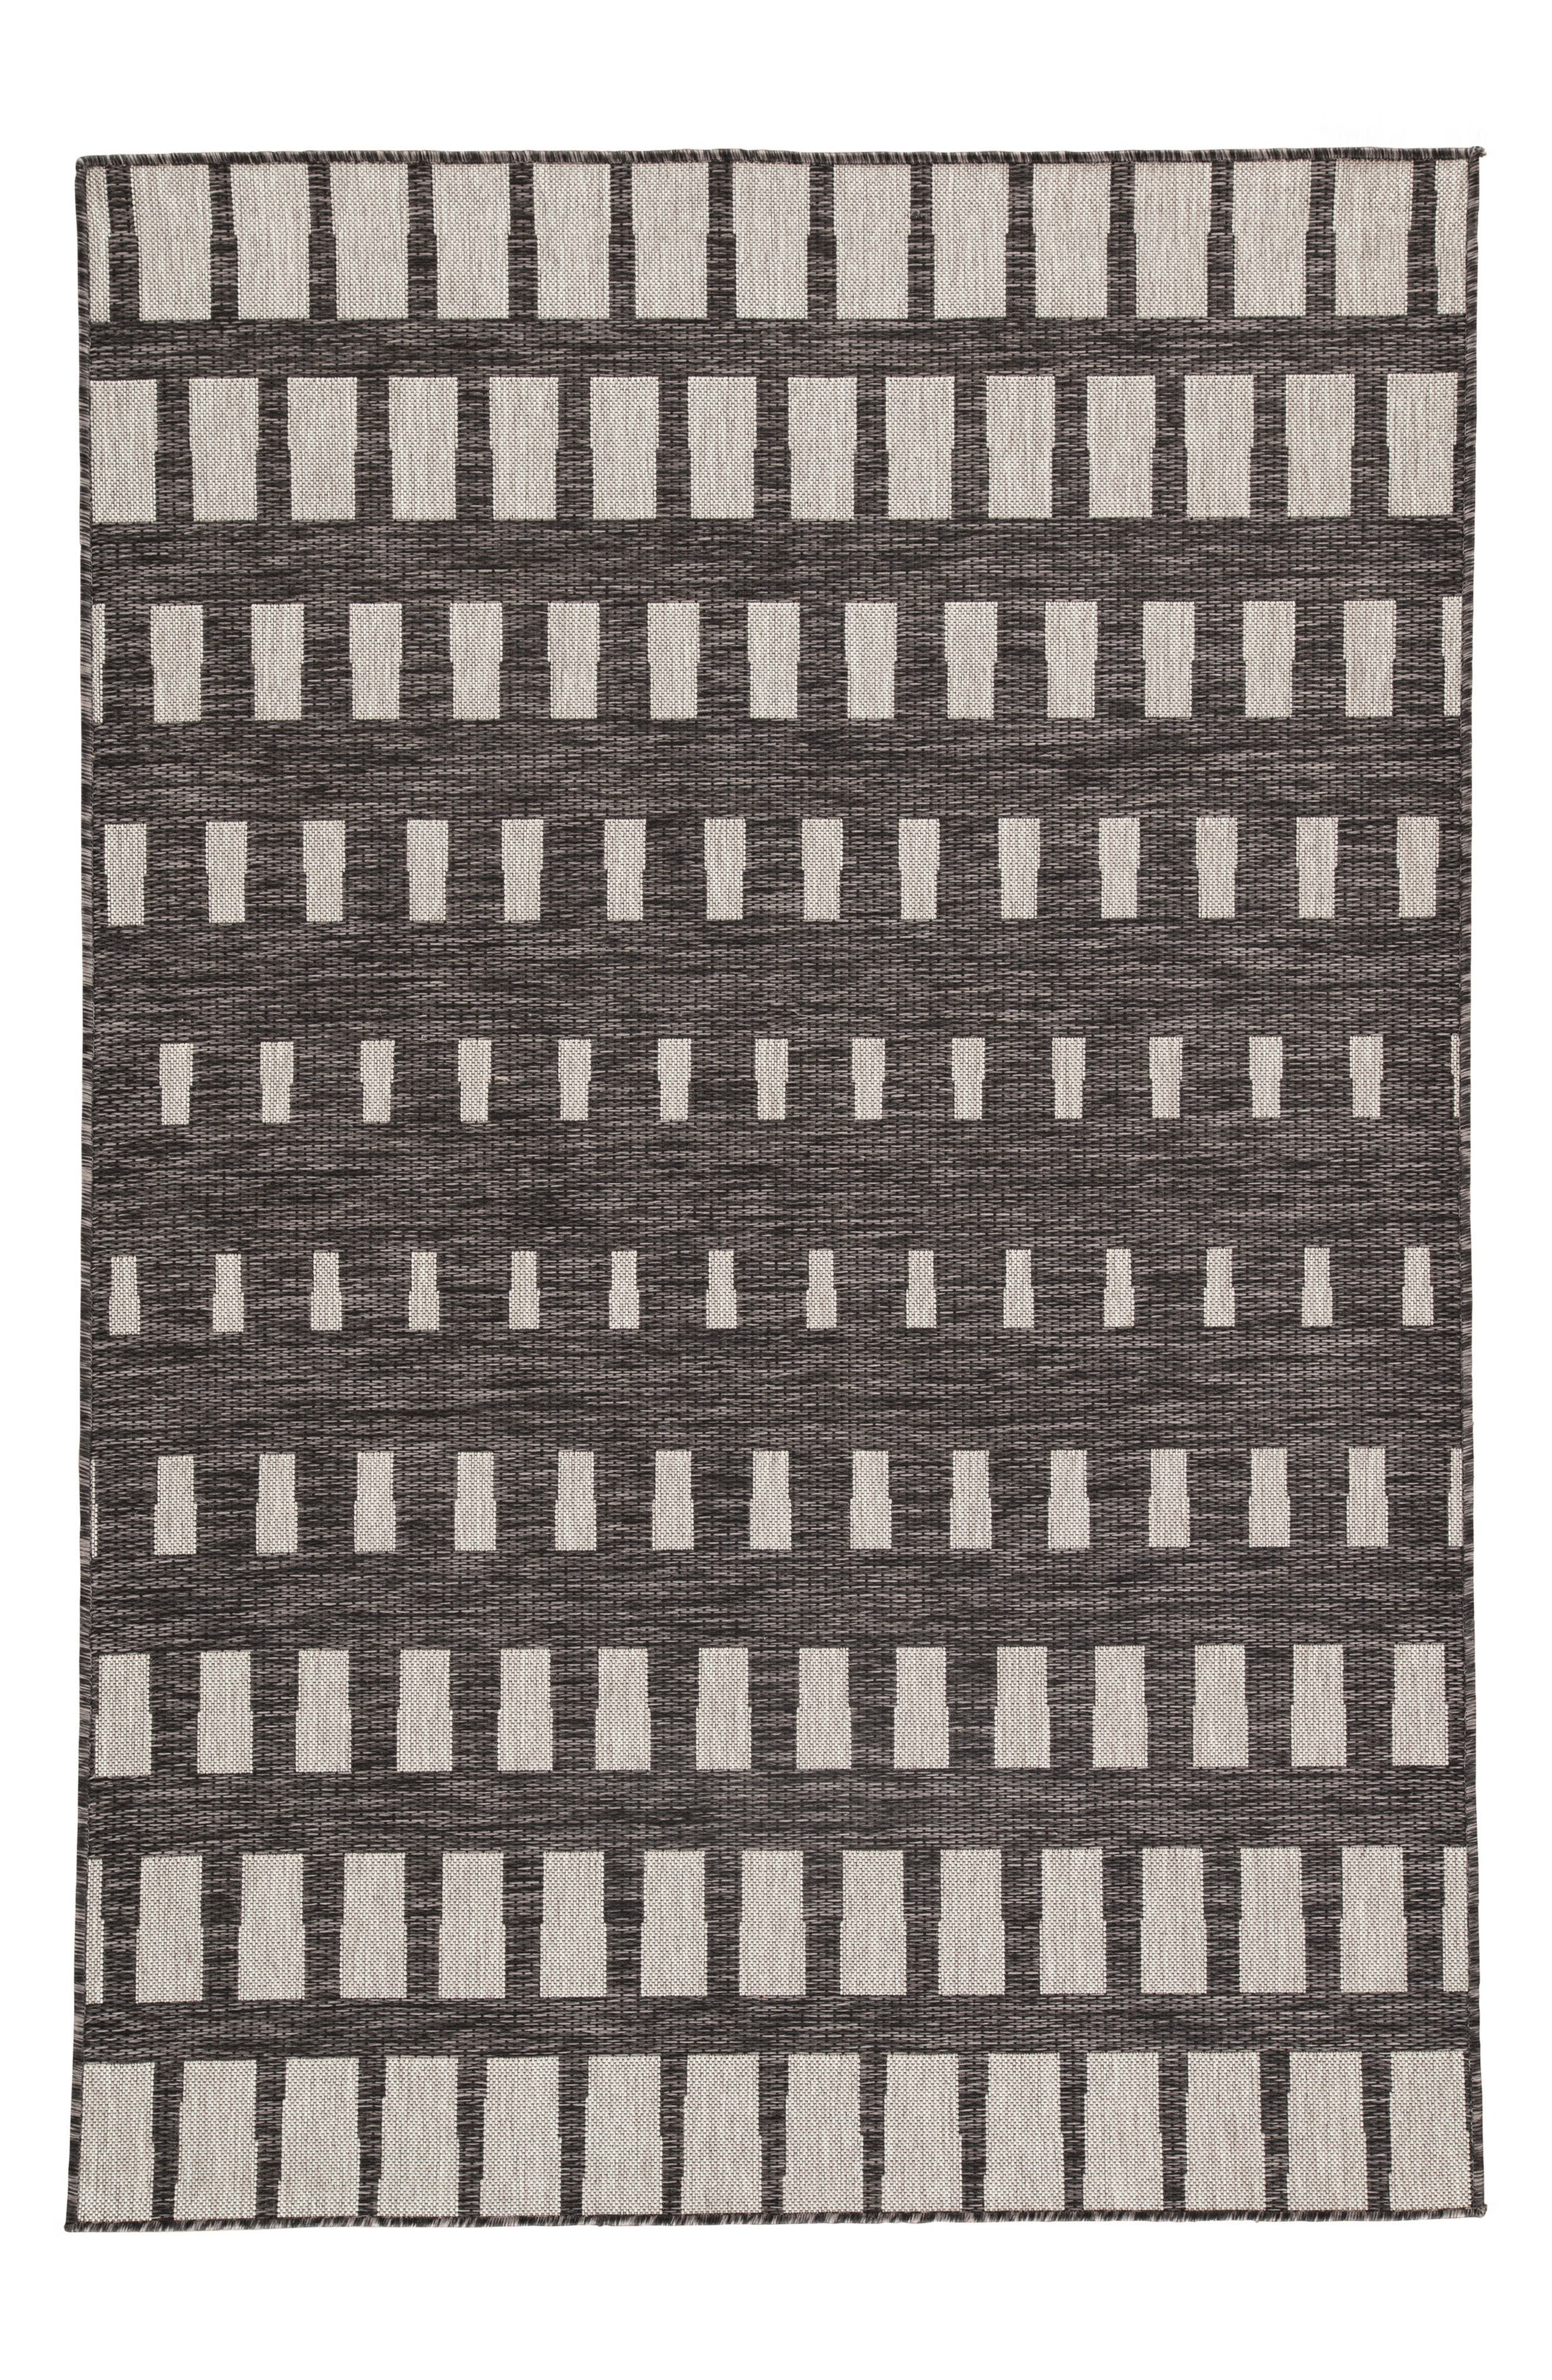 Vaise Indoor/Outdoor Rug,                             Main thumbnail 1, color,                             PEWTER